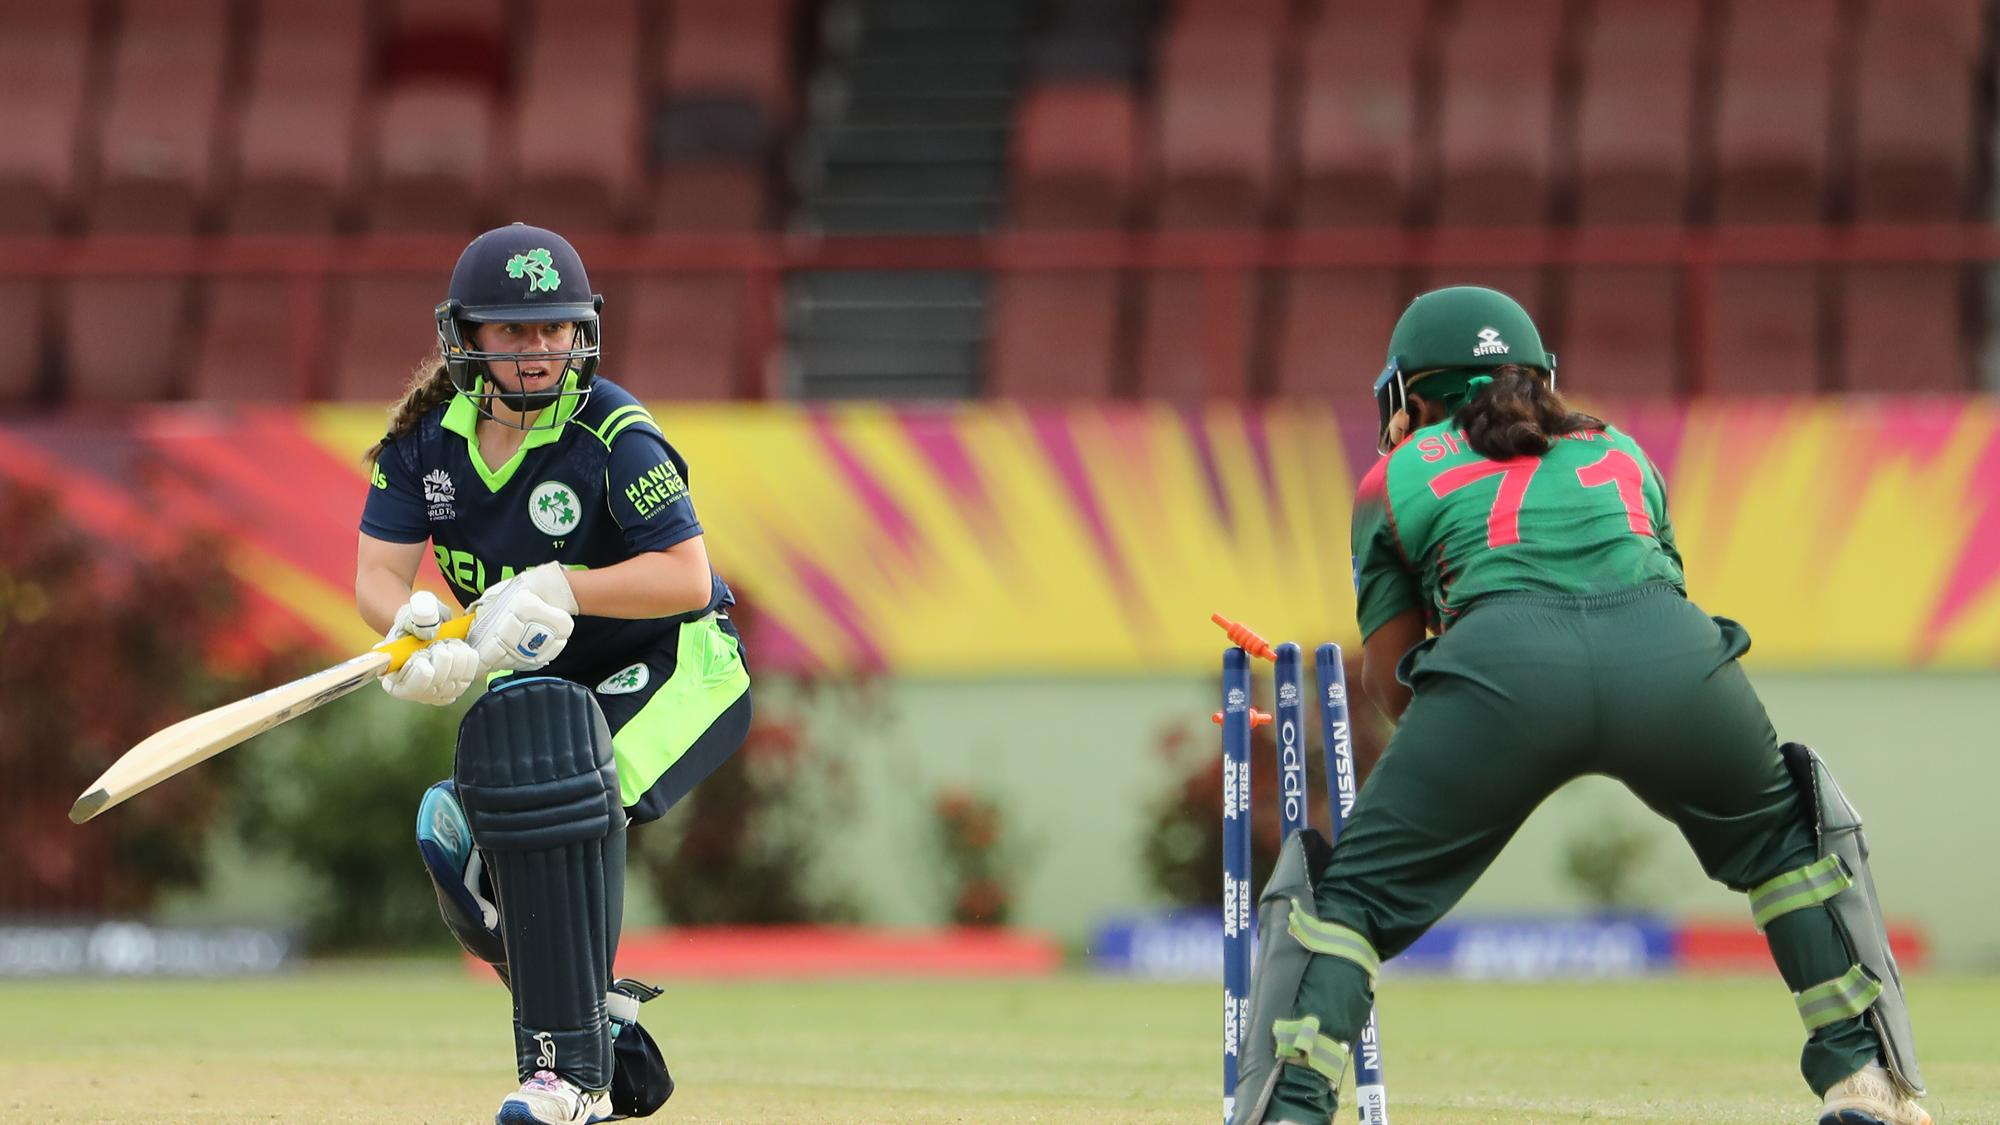 Laura Delany of Ireland is stumped by Shamima Sultana of Bangladesh during the ICC Women's World T20 warm up match between Bangladesh and Ireland on November 4, 2018 at the Guyana National Stadium in Providence, Guyana.